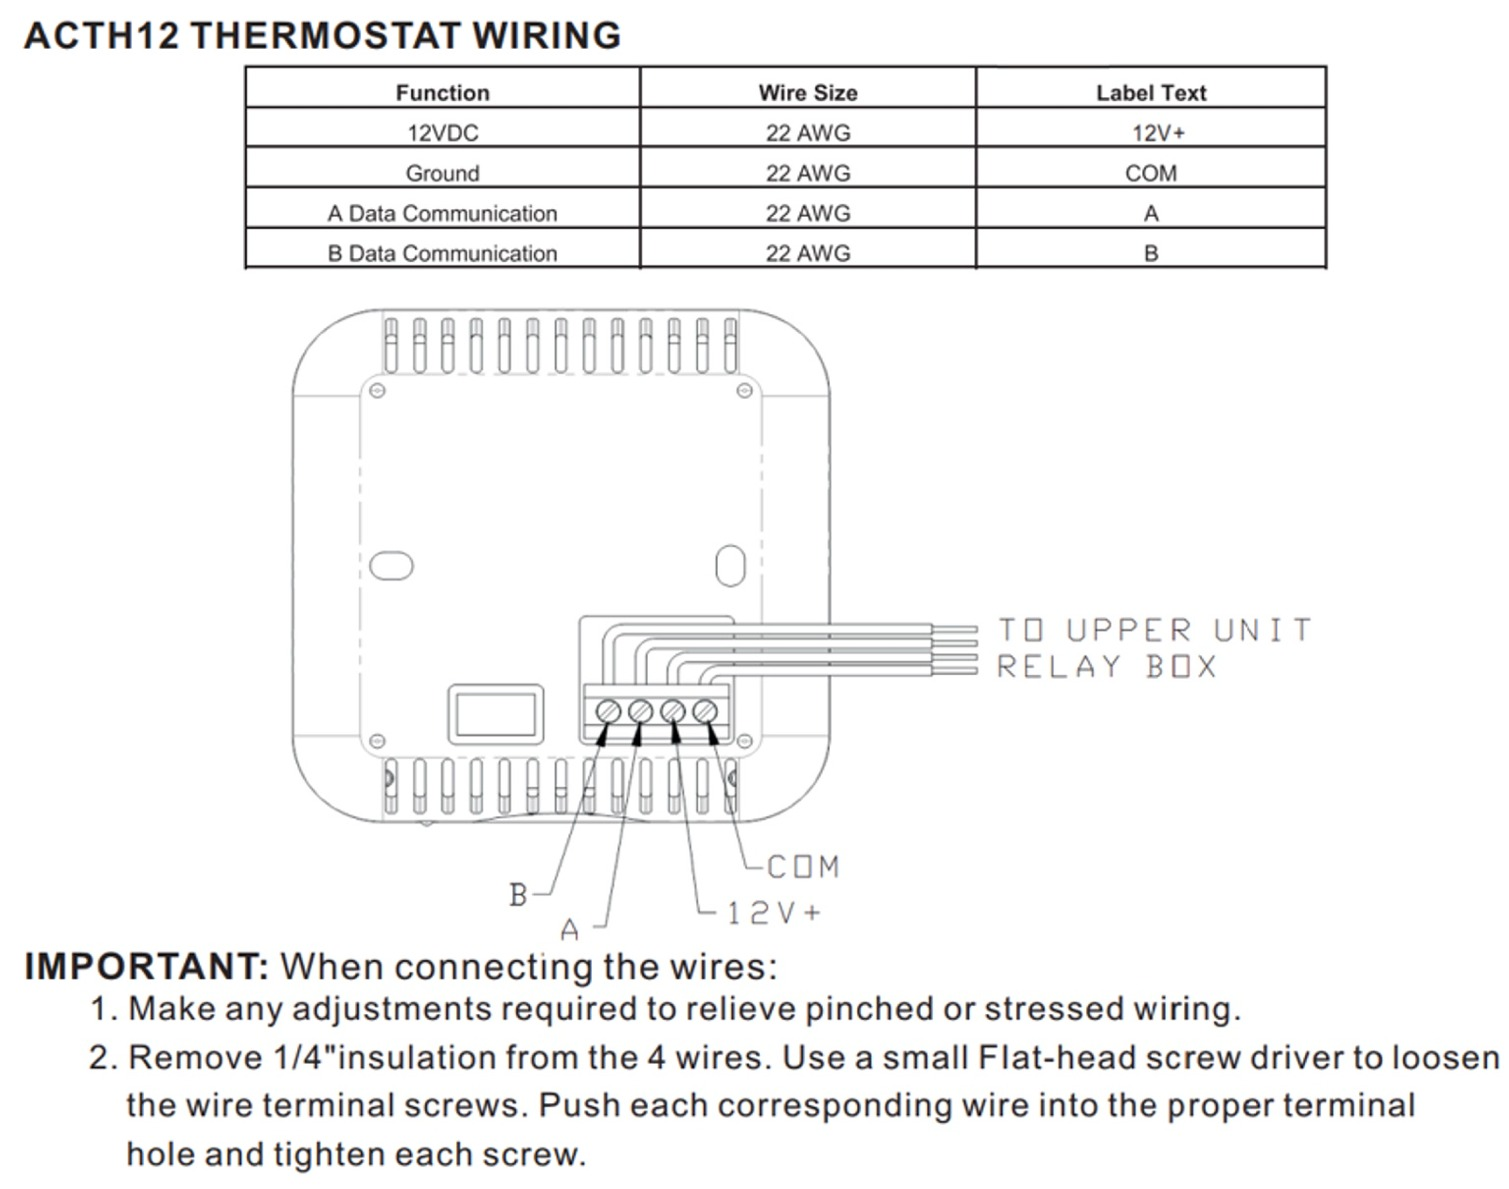 i need a wire diagram for the ACTH12 thermostat? (Advent Air ACTH12 Digital  Wall Thermostat) | Advent Air Thermostat Wiring Diagram |  | RVupgrades.com RV Parts & Accessories Q & A